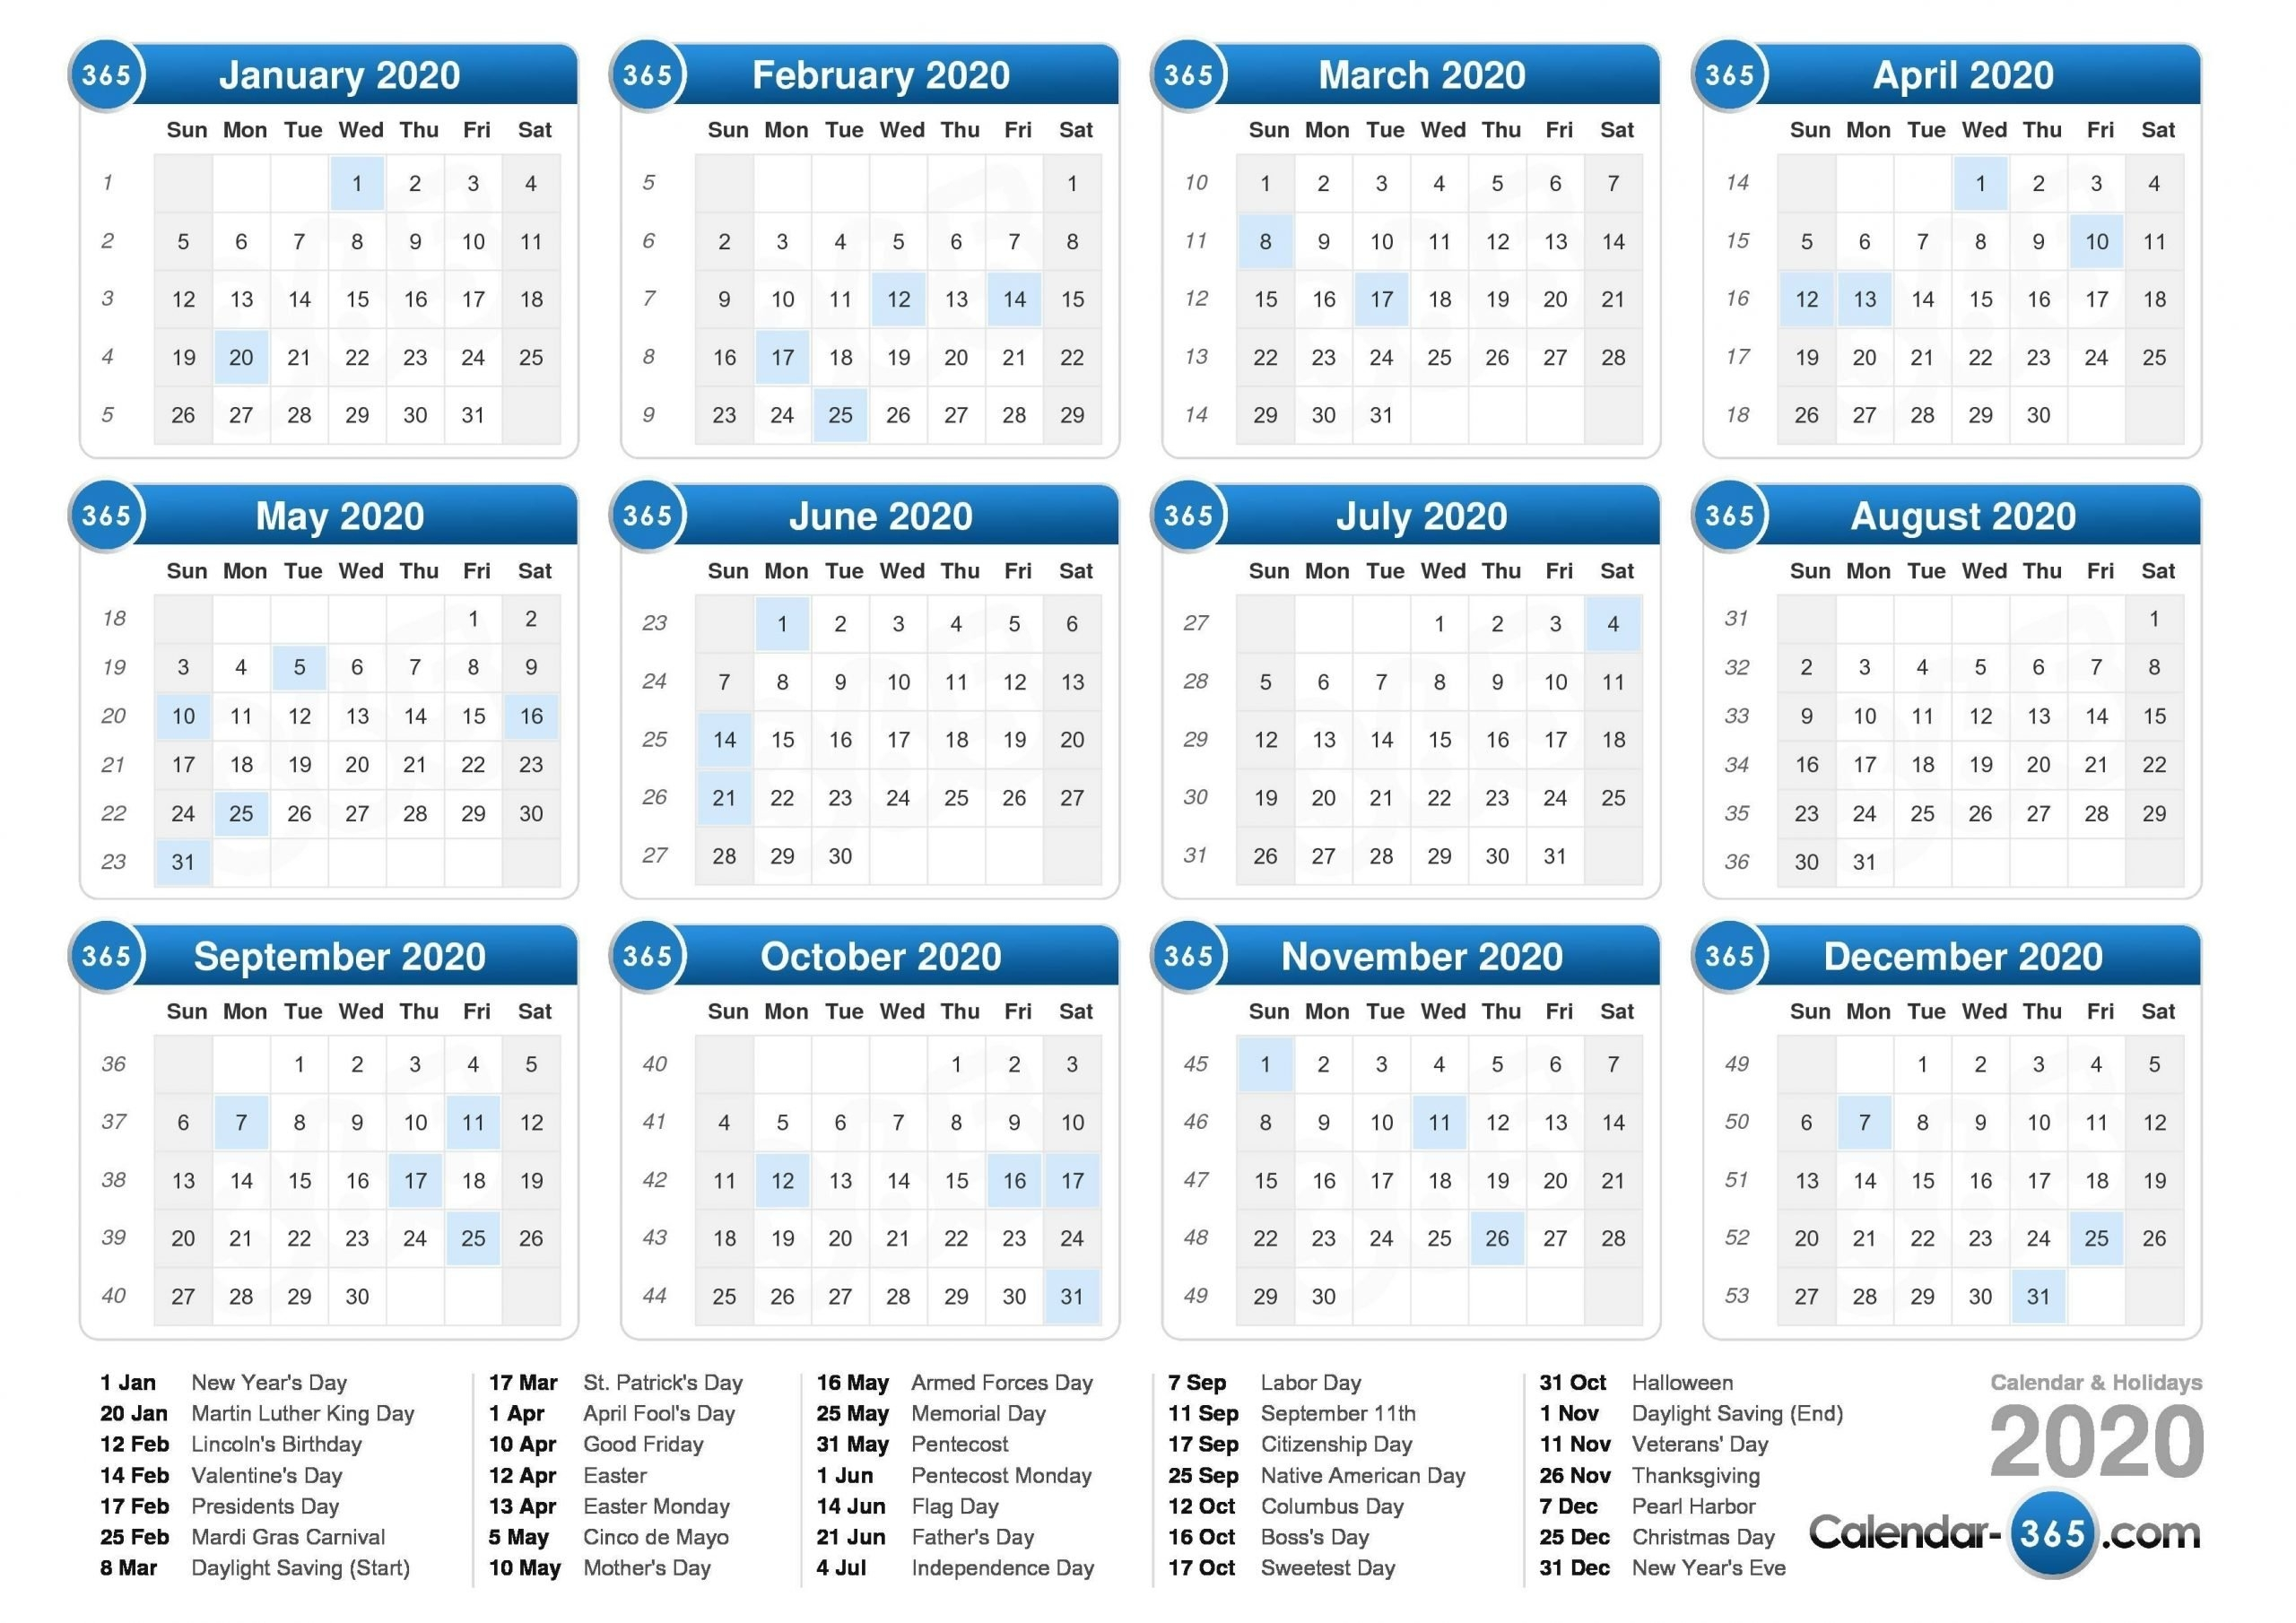 Multi-Dode Vial 28-Day Expiration Calculator | Calendar Template 2021 in 30 Day Multidose Expiration Calendar 2021 Graphics